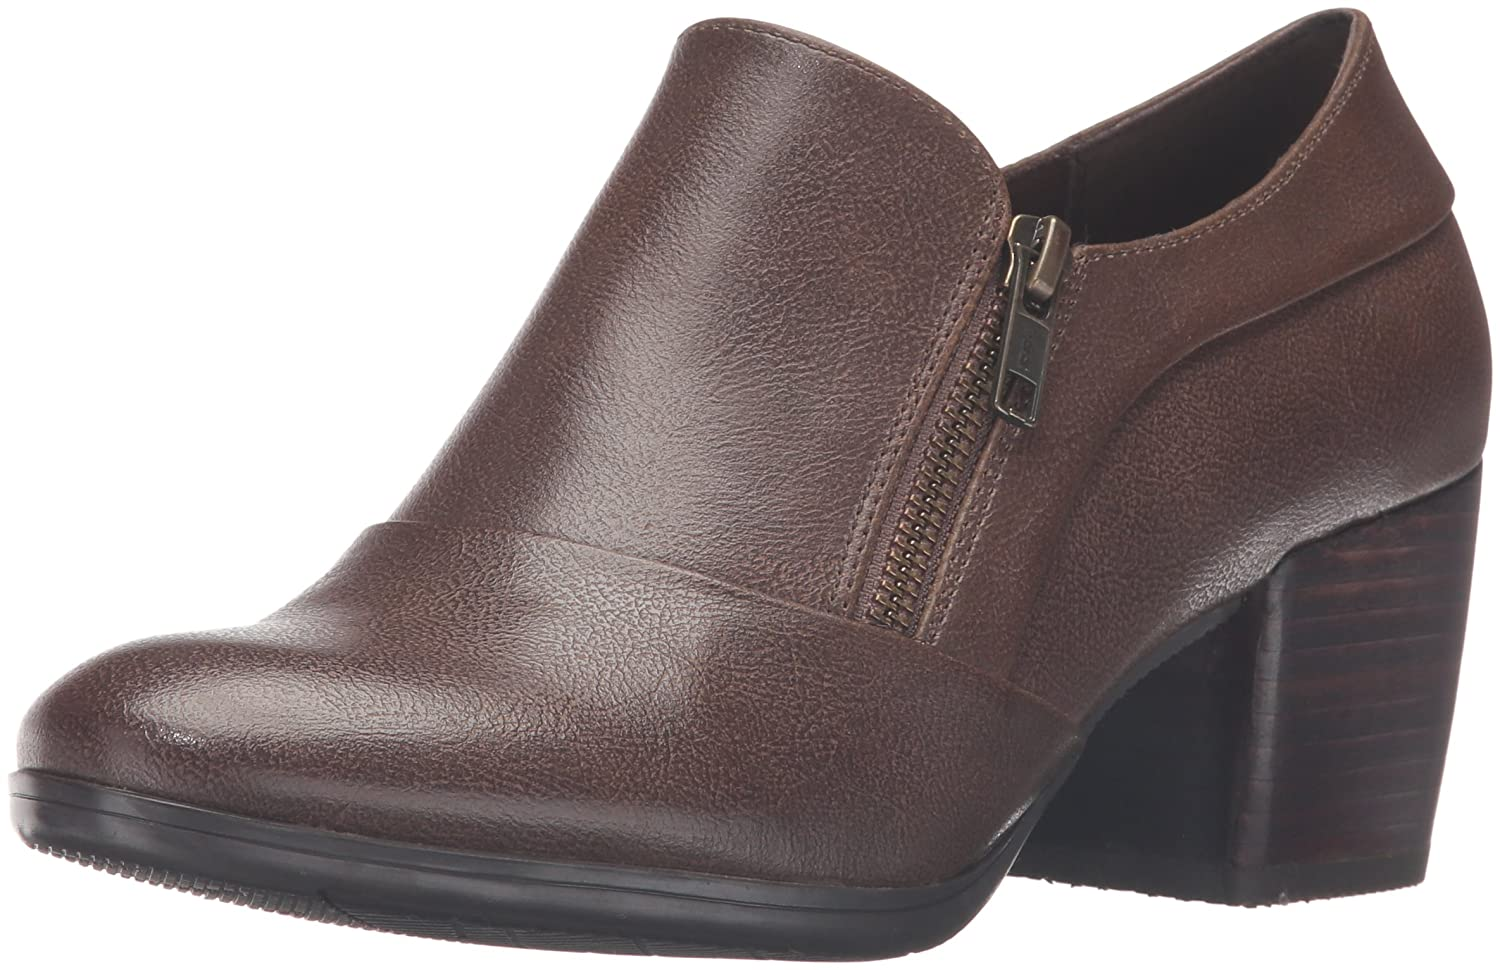 BareTraps Women's Bt Kelyn Ankle Bootie B01LC1RIB4 11 B(M) US|Brown